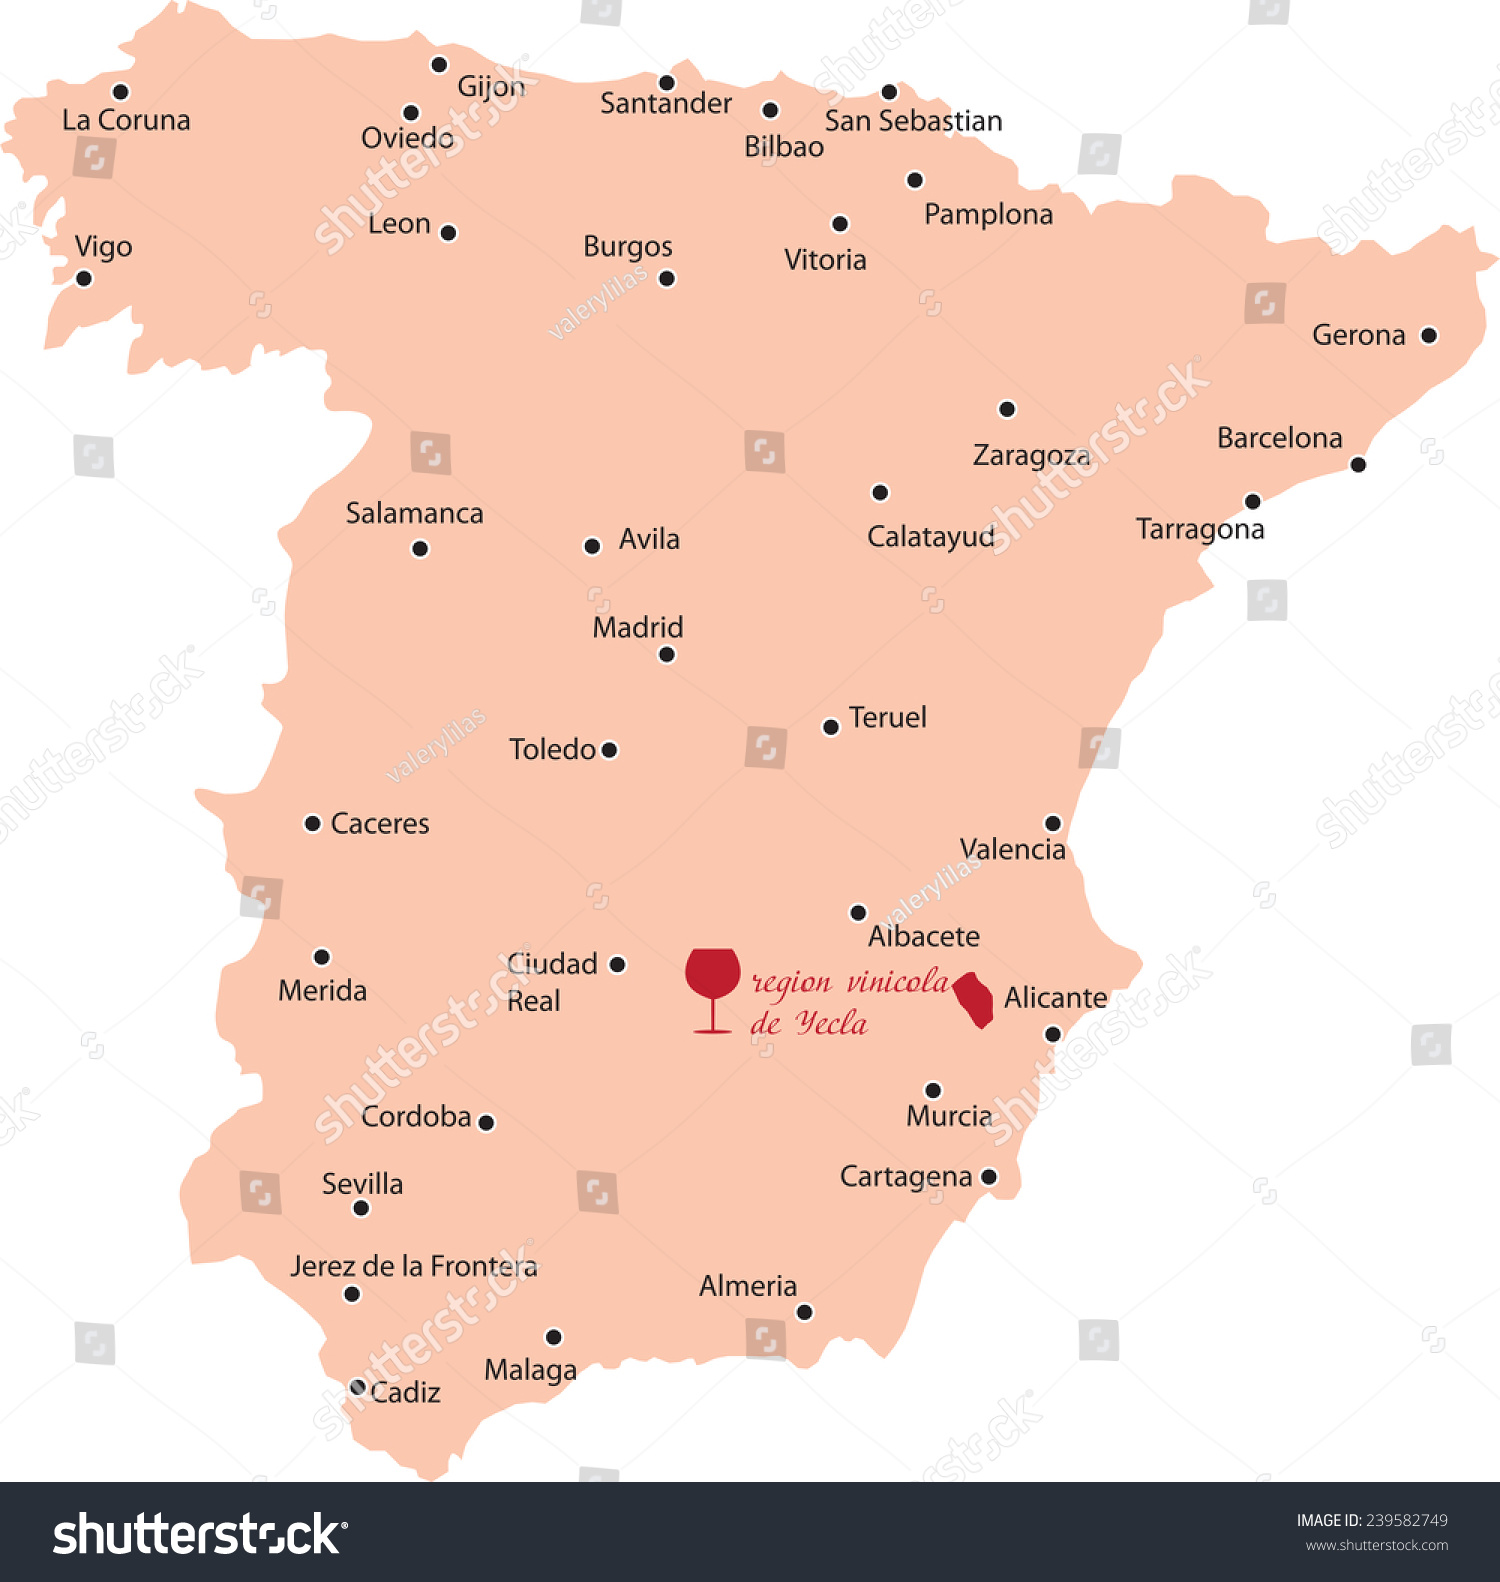 Map Of Yecla Spain.Map Region Yecla Spain Stock Vector Royalty Free 239582749